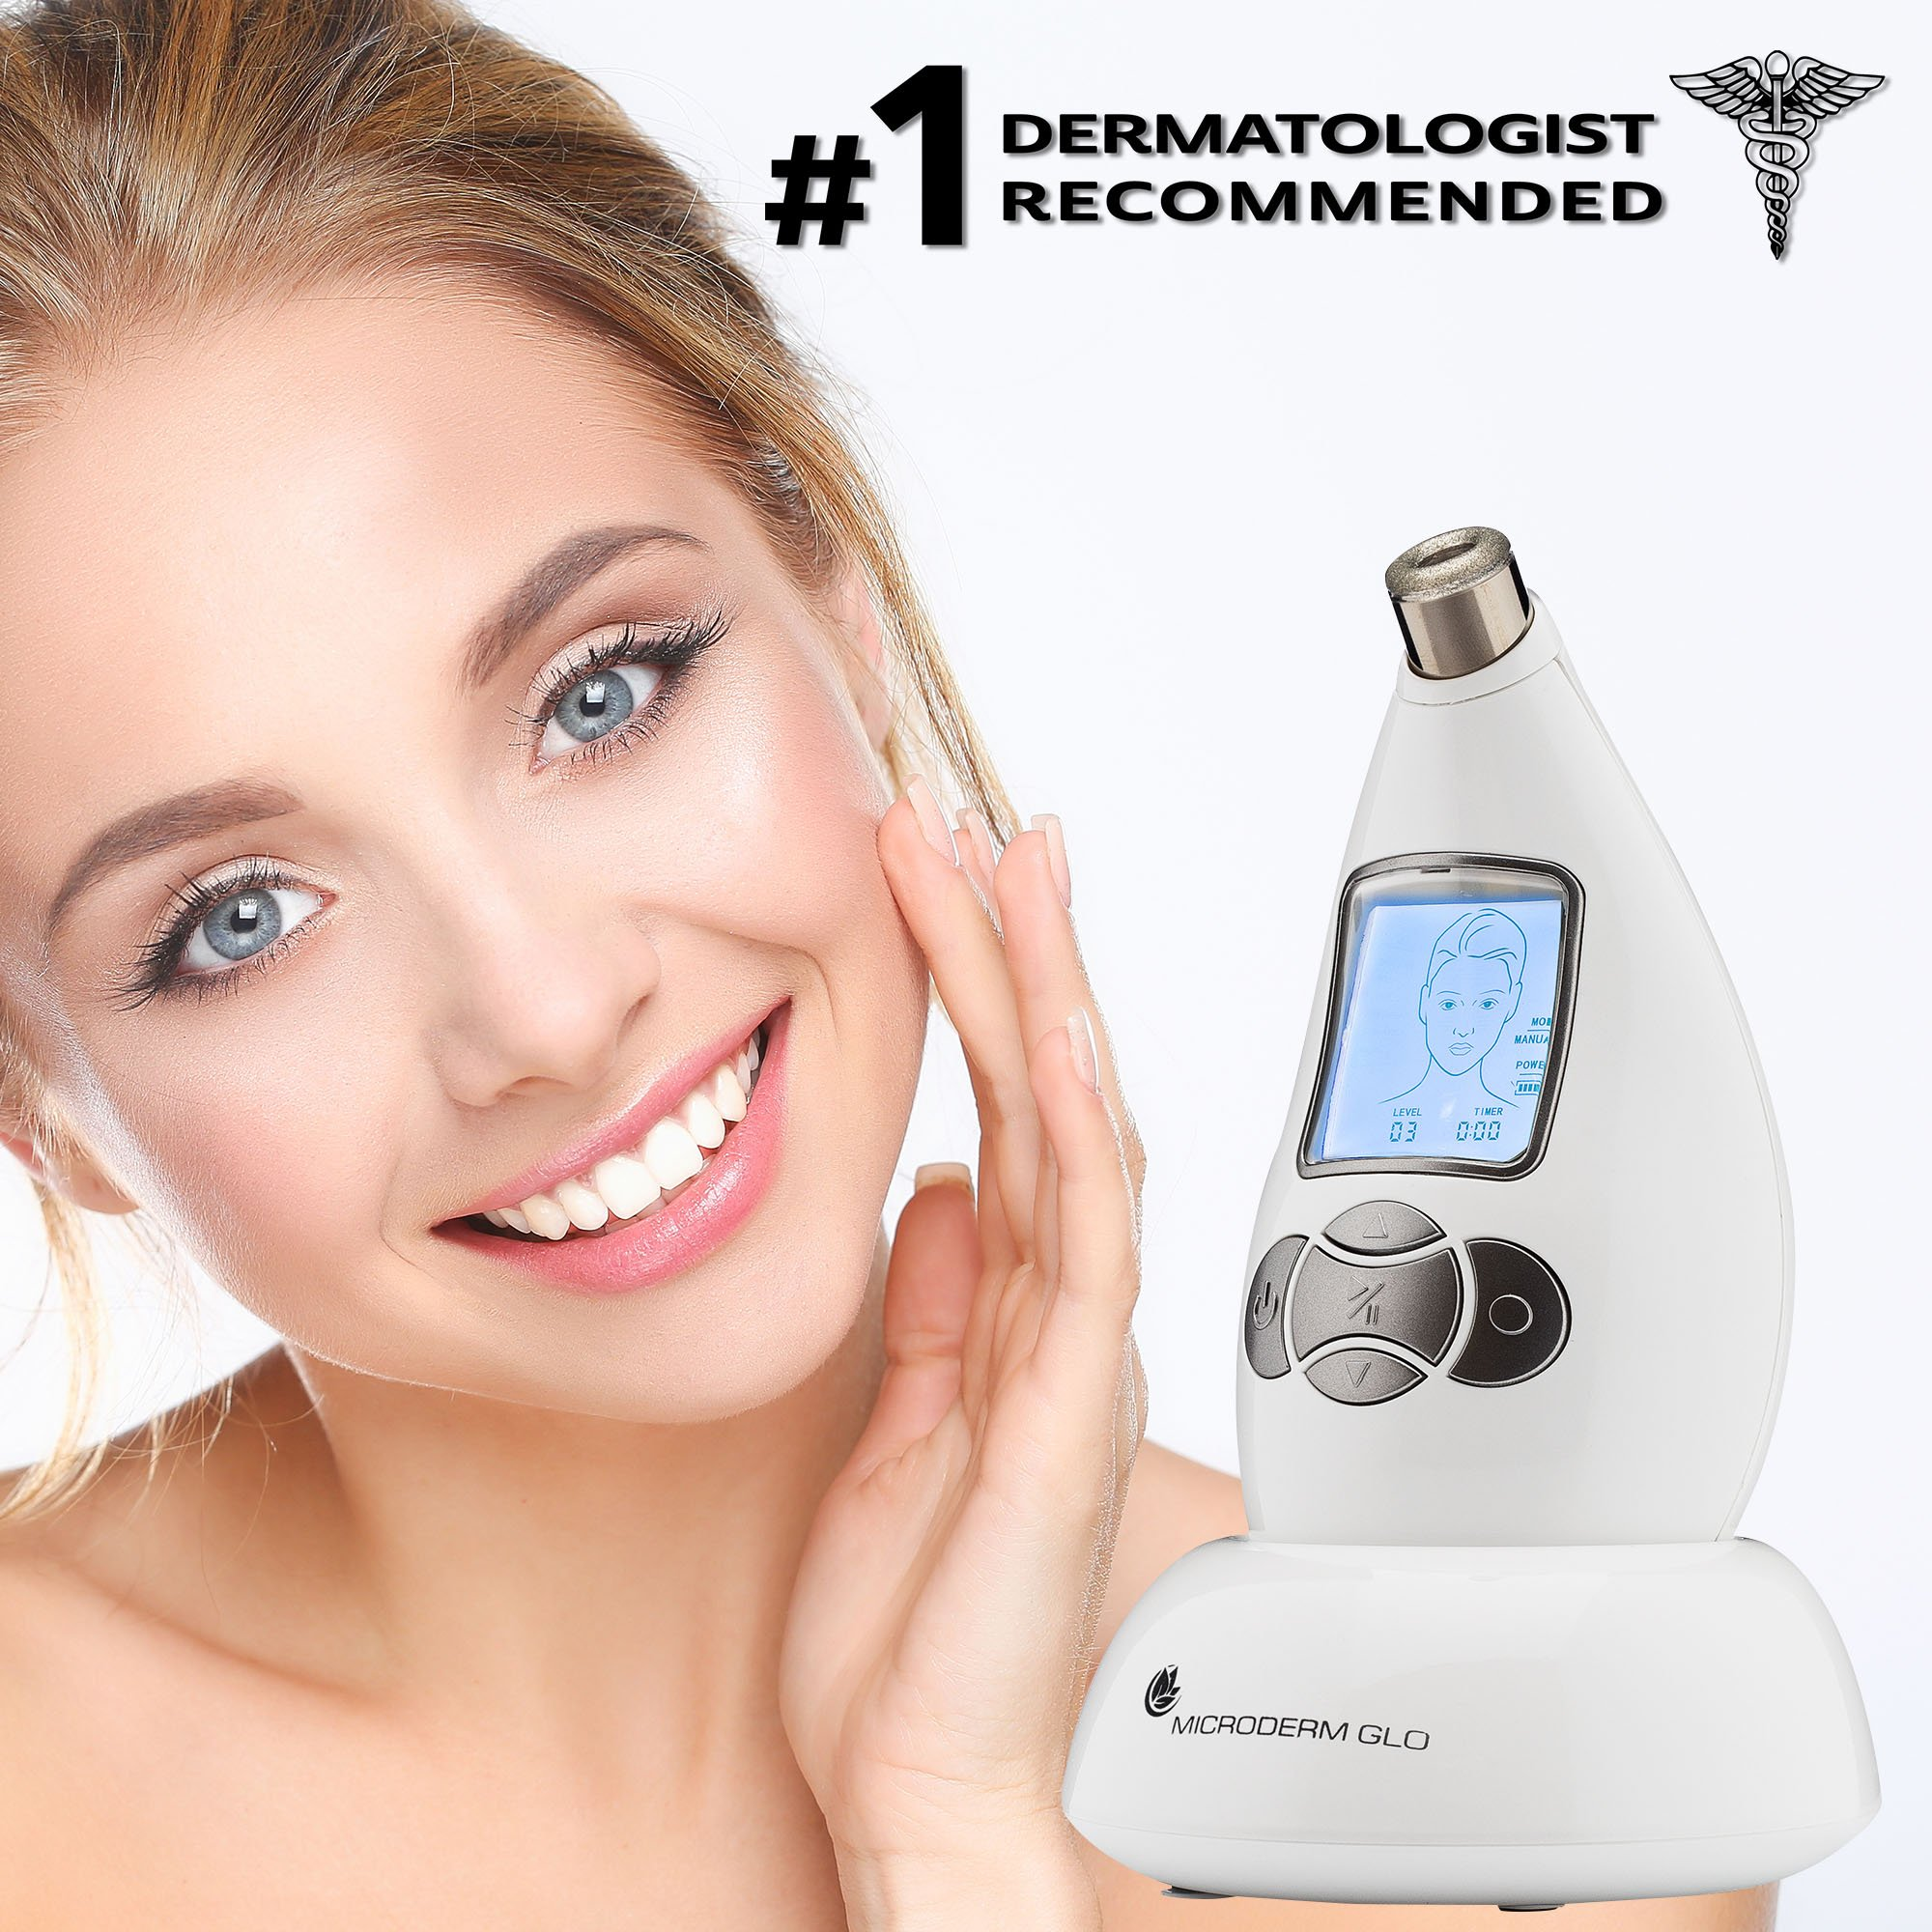 Microderm GLO Diamond Microdermabrasion System by Nuvéderm – #1 Advanced Home Facial Treatment Machine, Clinical Dermabrasion Anti-Aging Care, Perfect Blackhead Remover & Exfoliating Skincare Solution by Microderm GLO (Image #4)